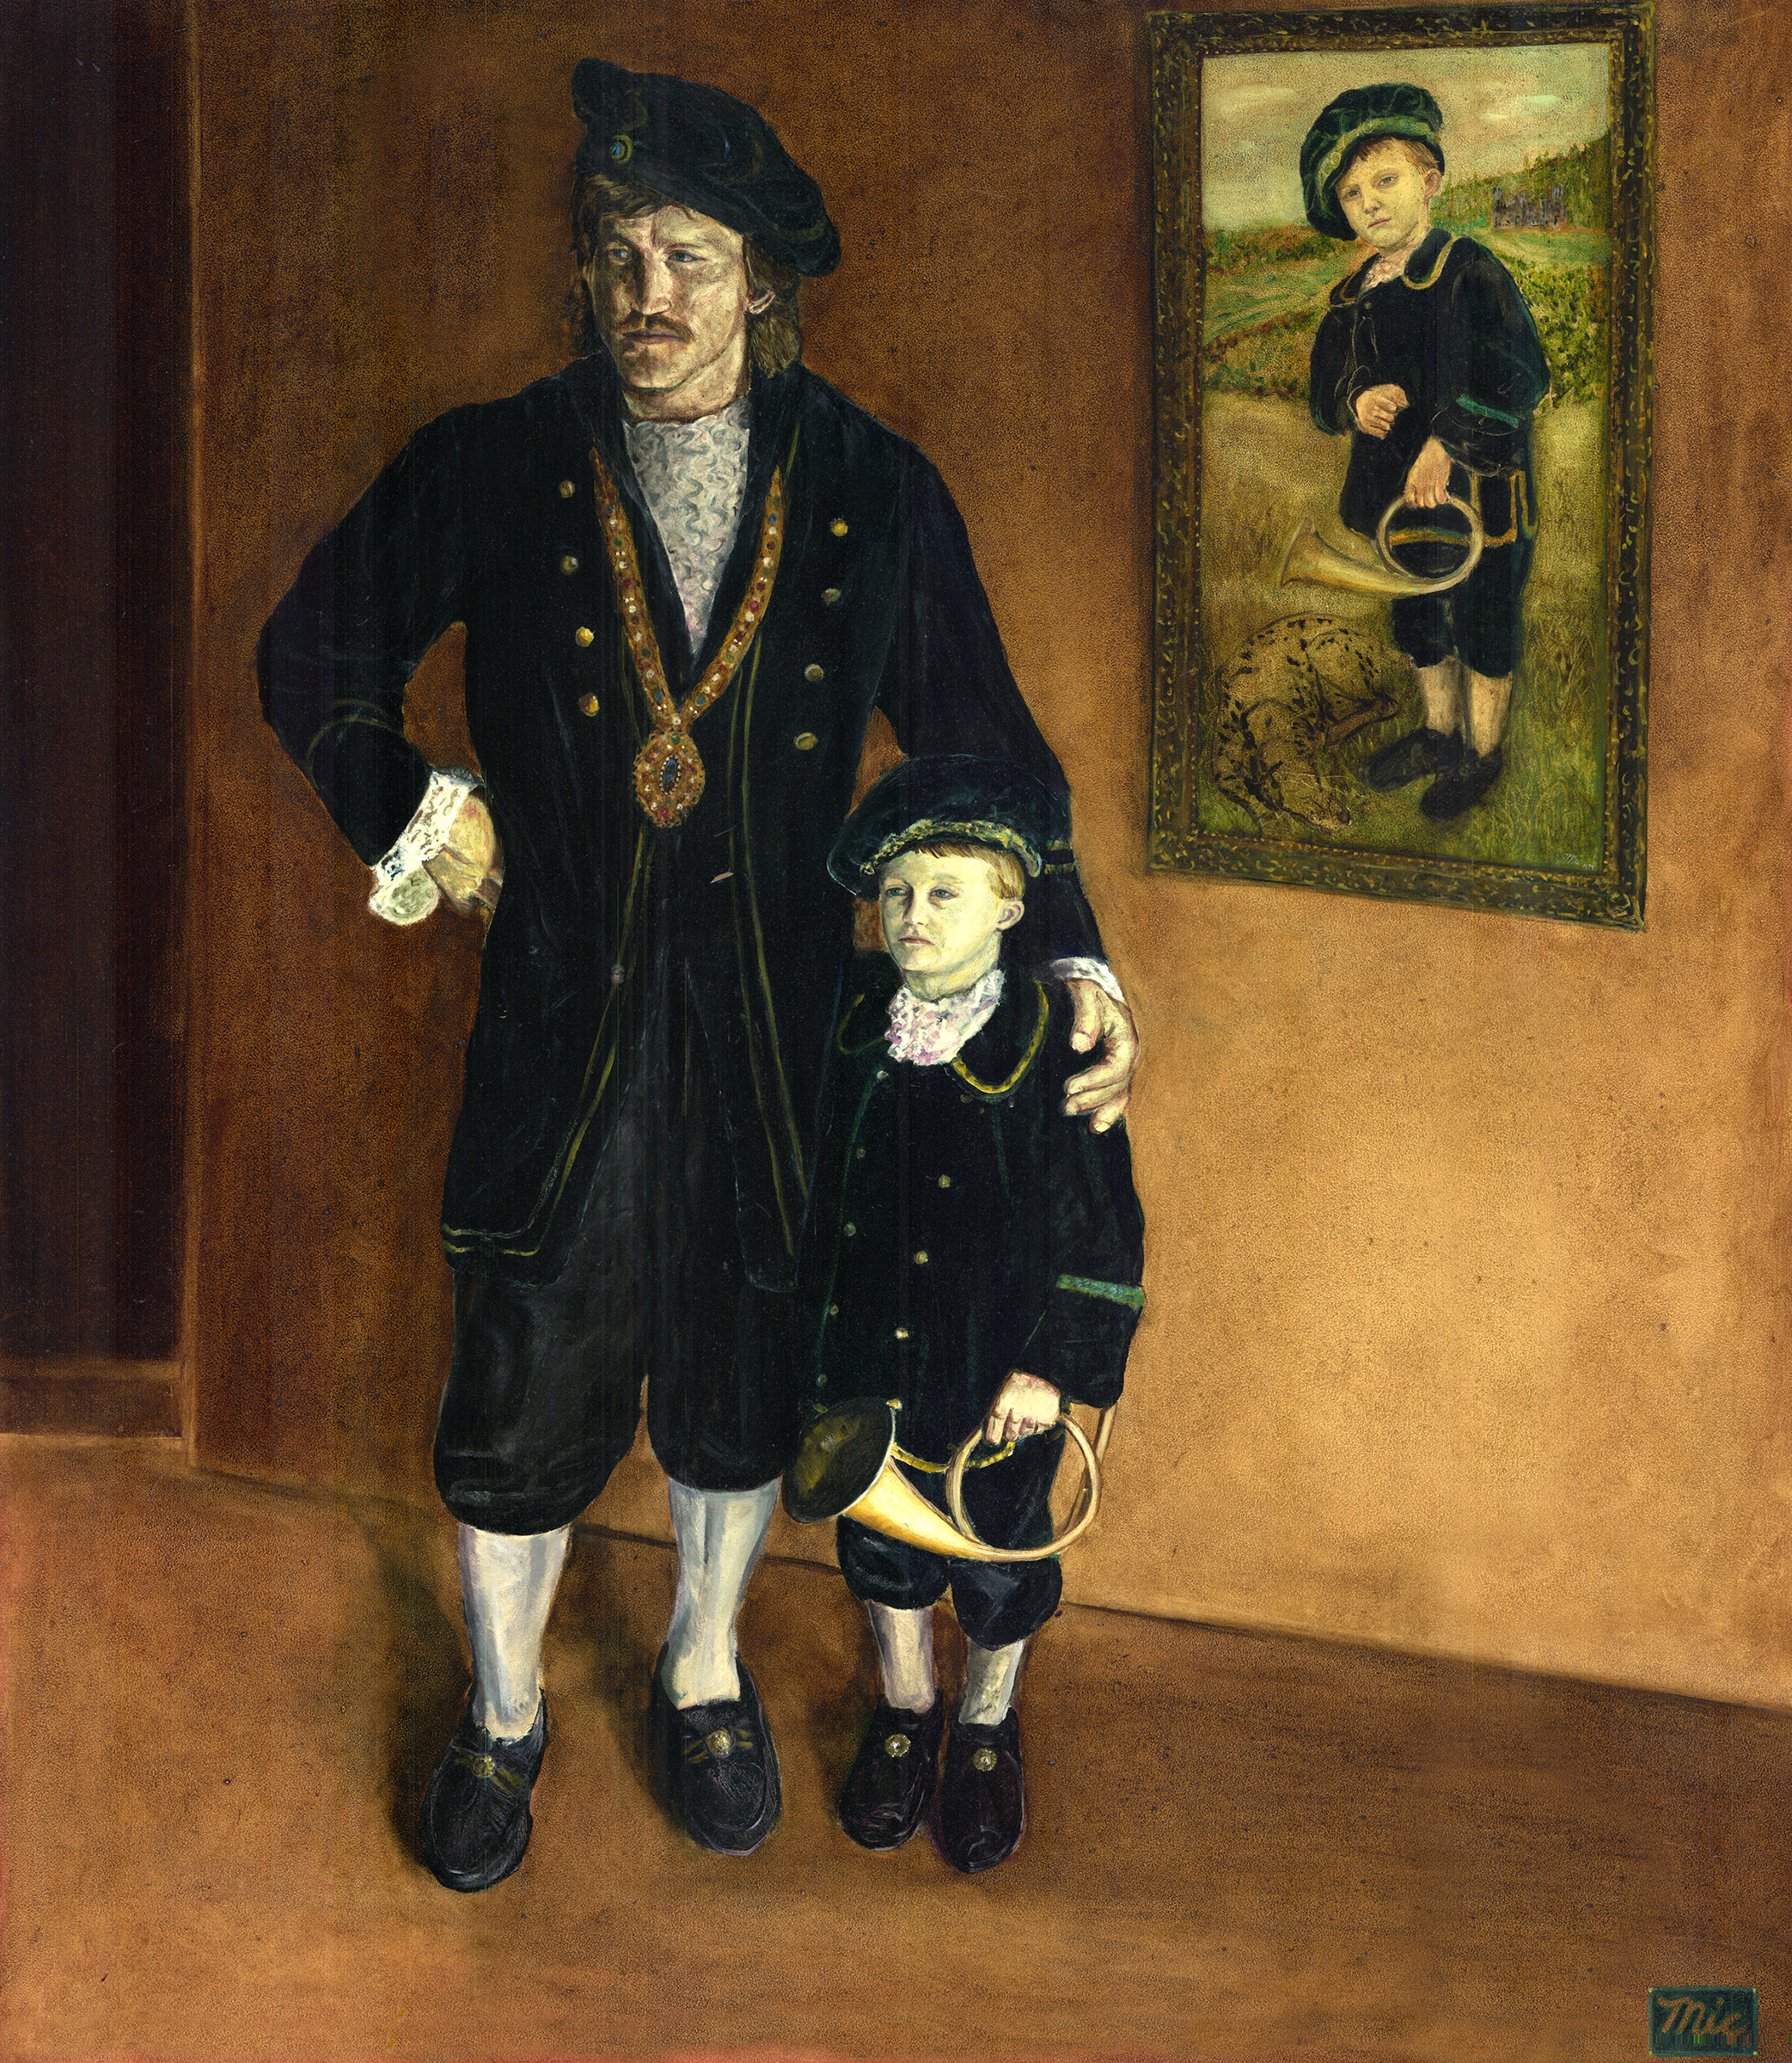 Count Endres and Son - Private Collection Private collection of Brian EndresGiclee Limited Edition and canvas prints are available. Please visit the prints gallery.